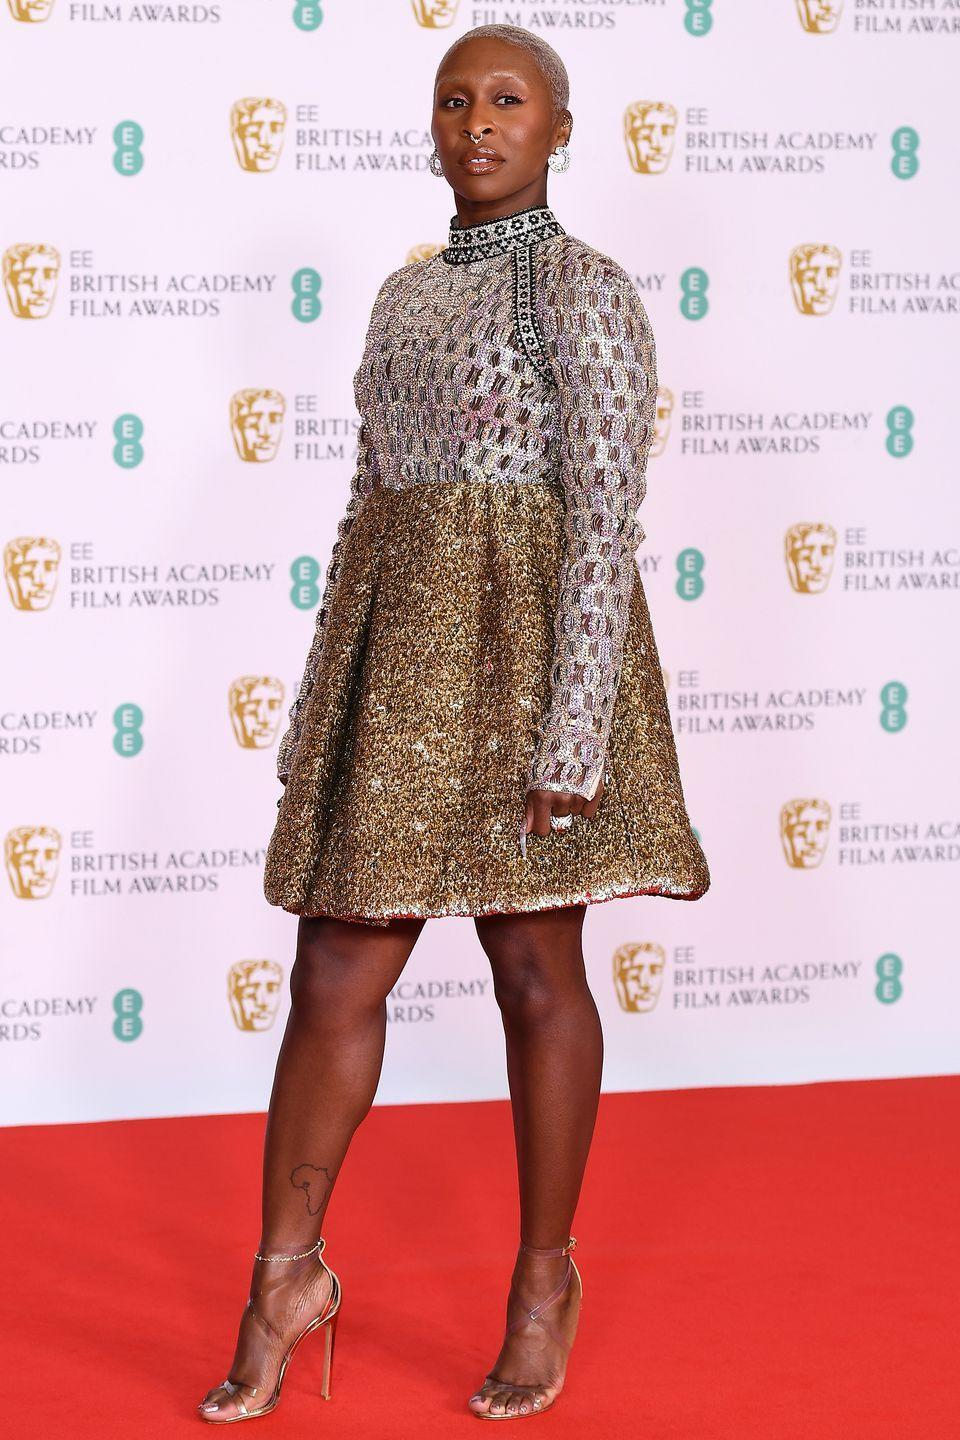 <p>Cynthia Erivo made a statement in a silver and gold Louis Vuitton dress and strappy matching heels.</p>